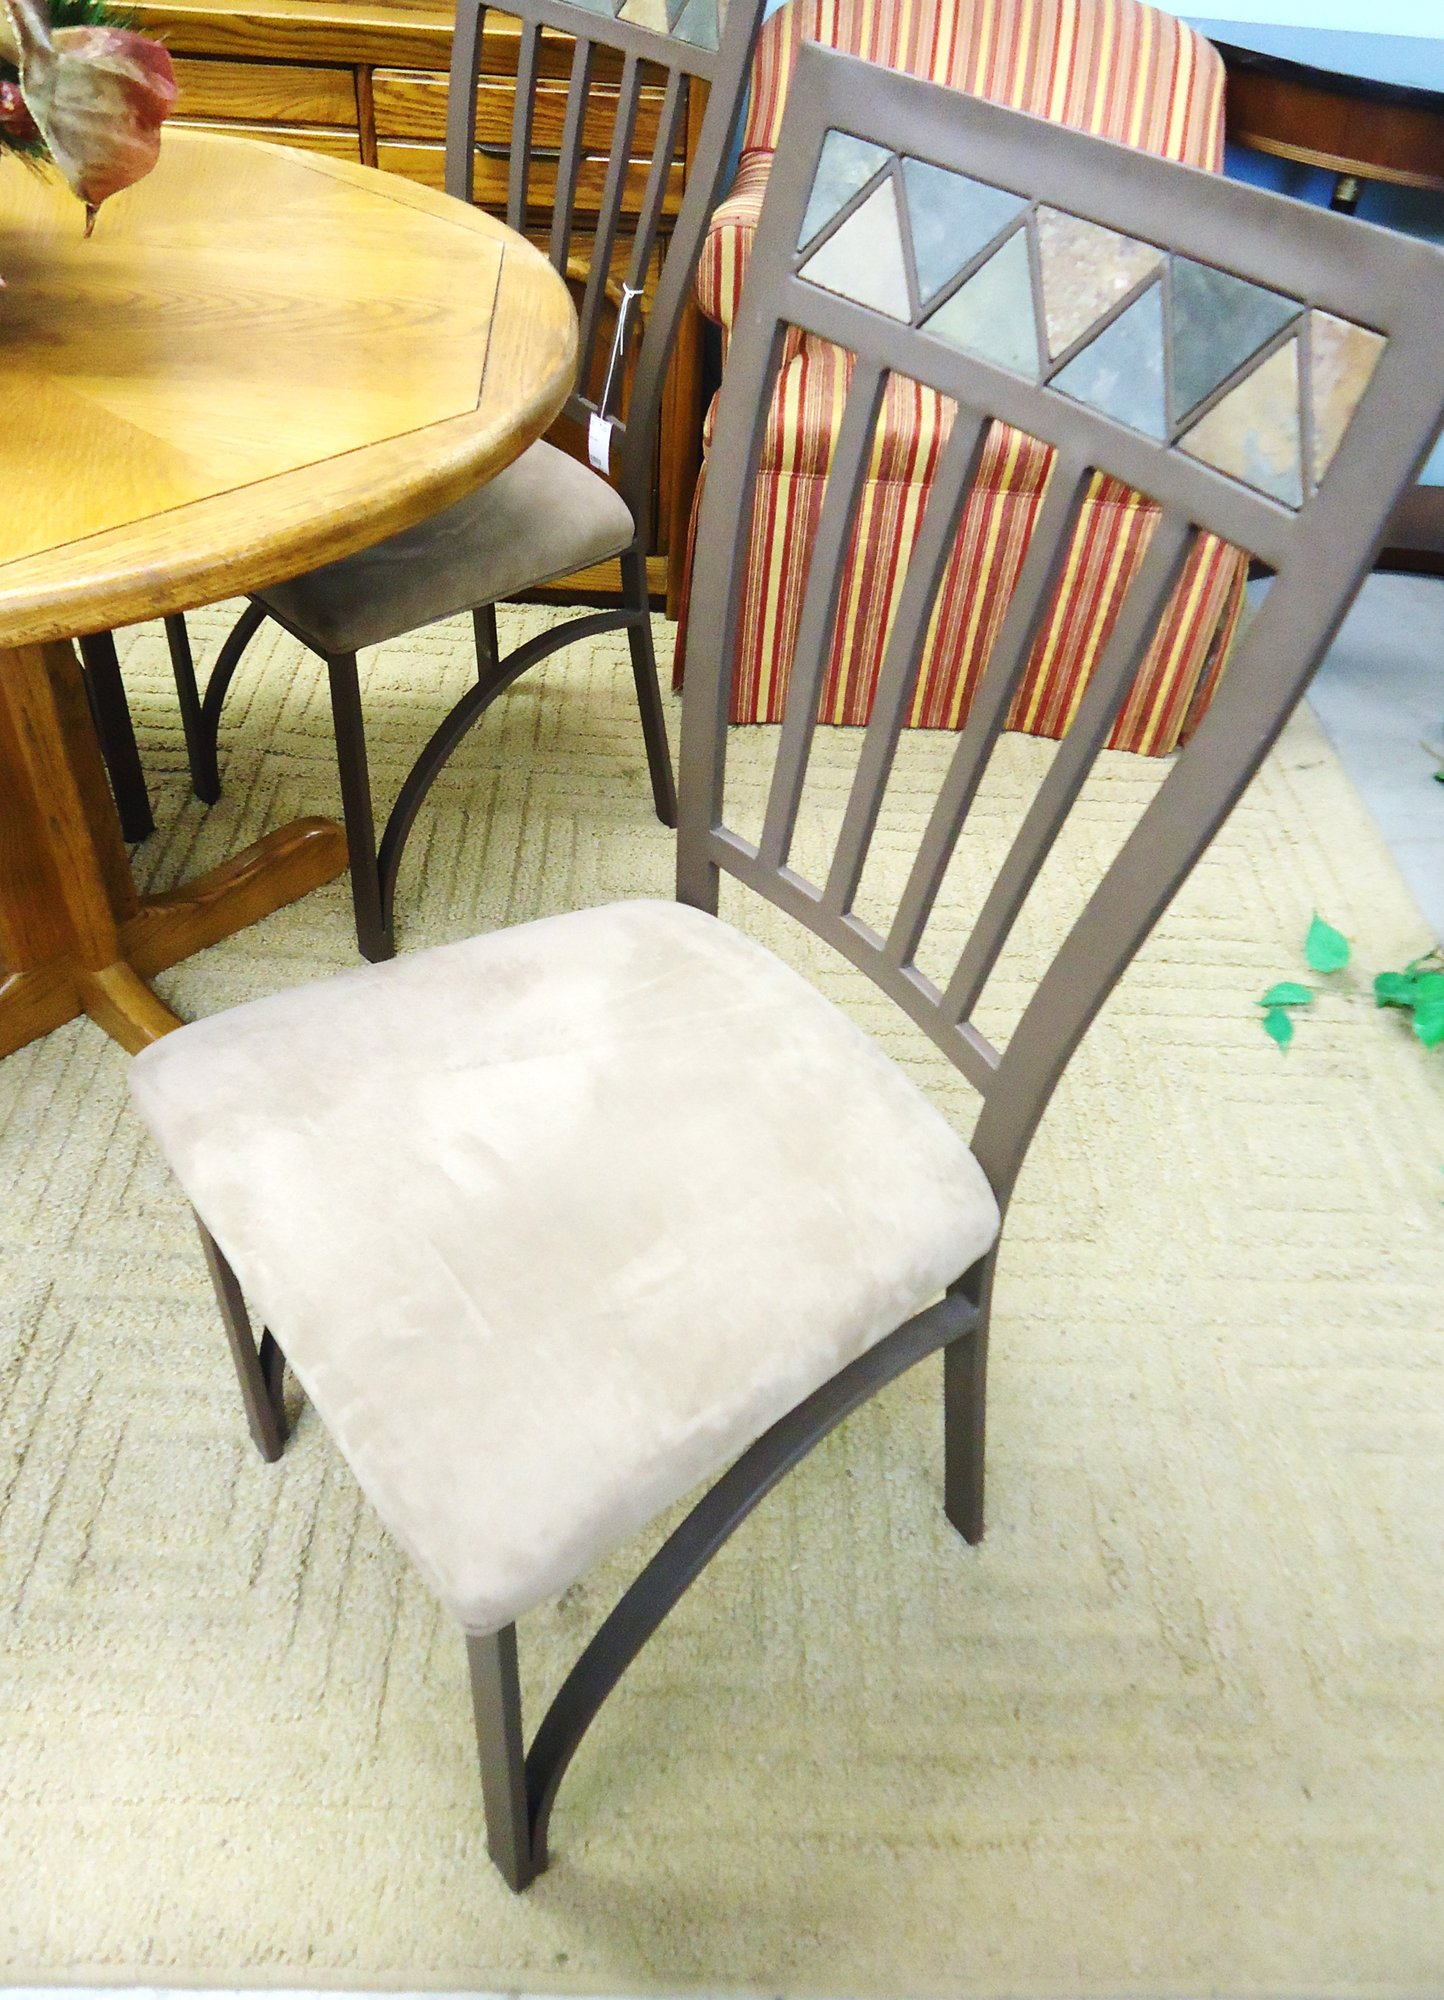 1 13367 4 Metal Chairs